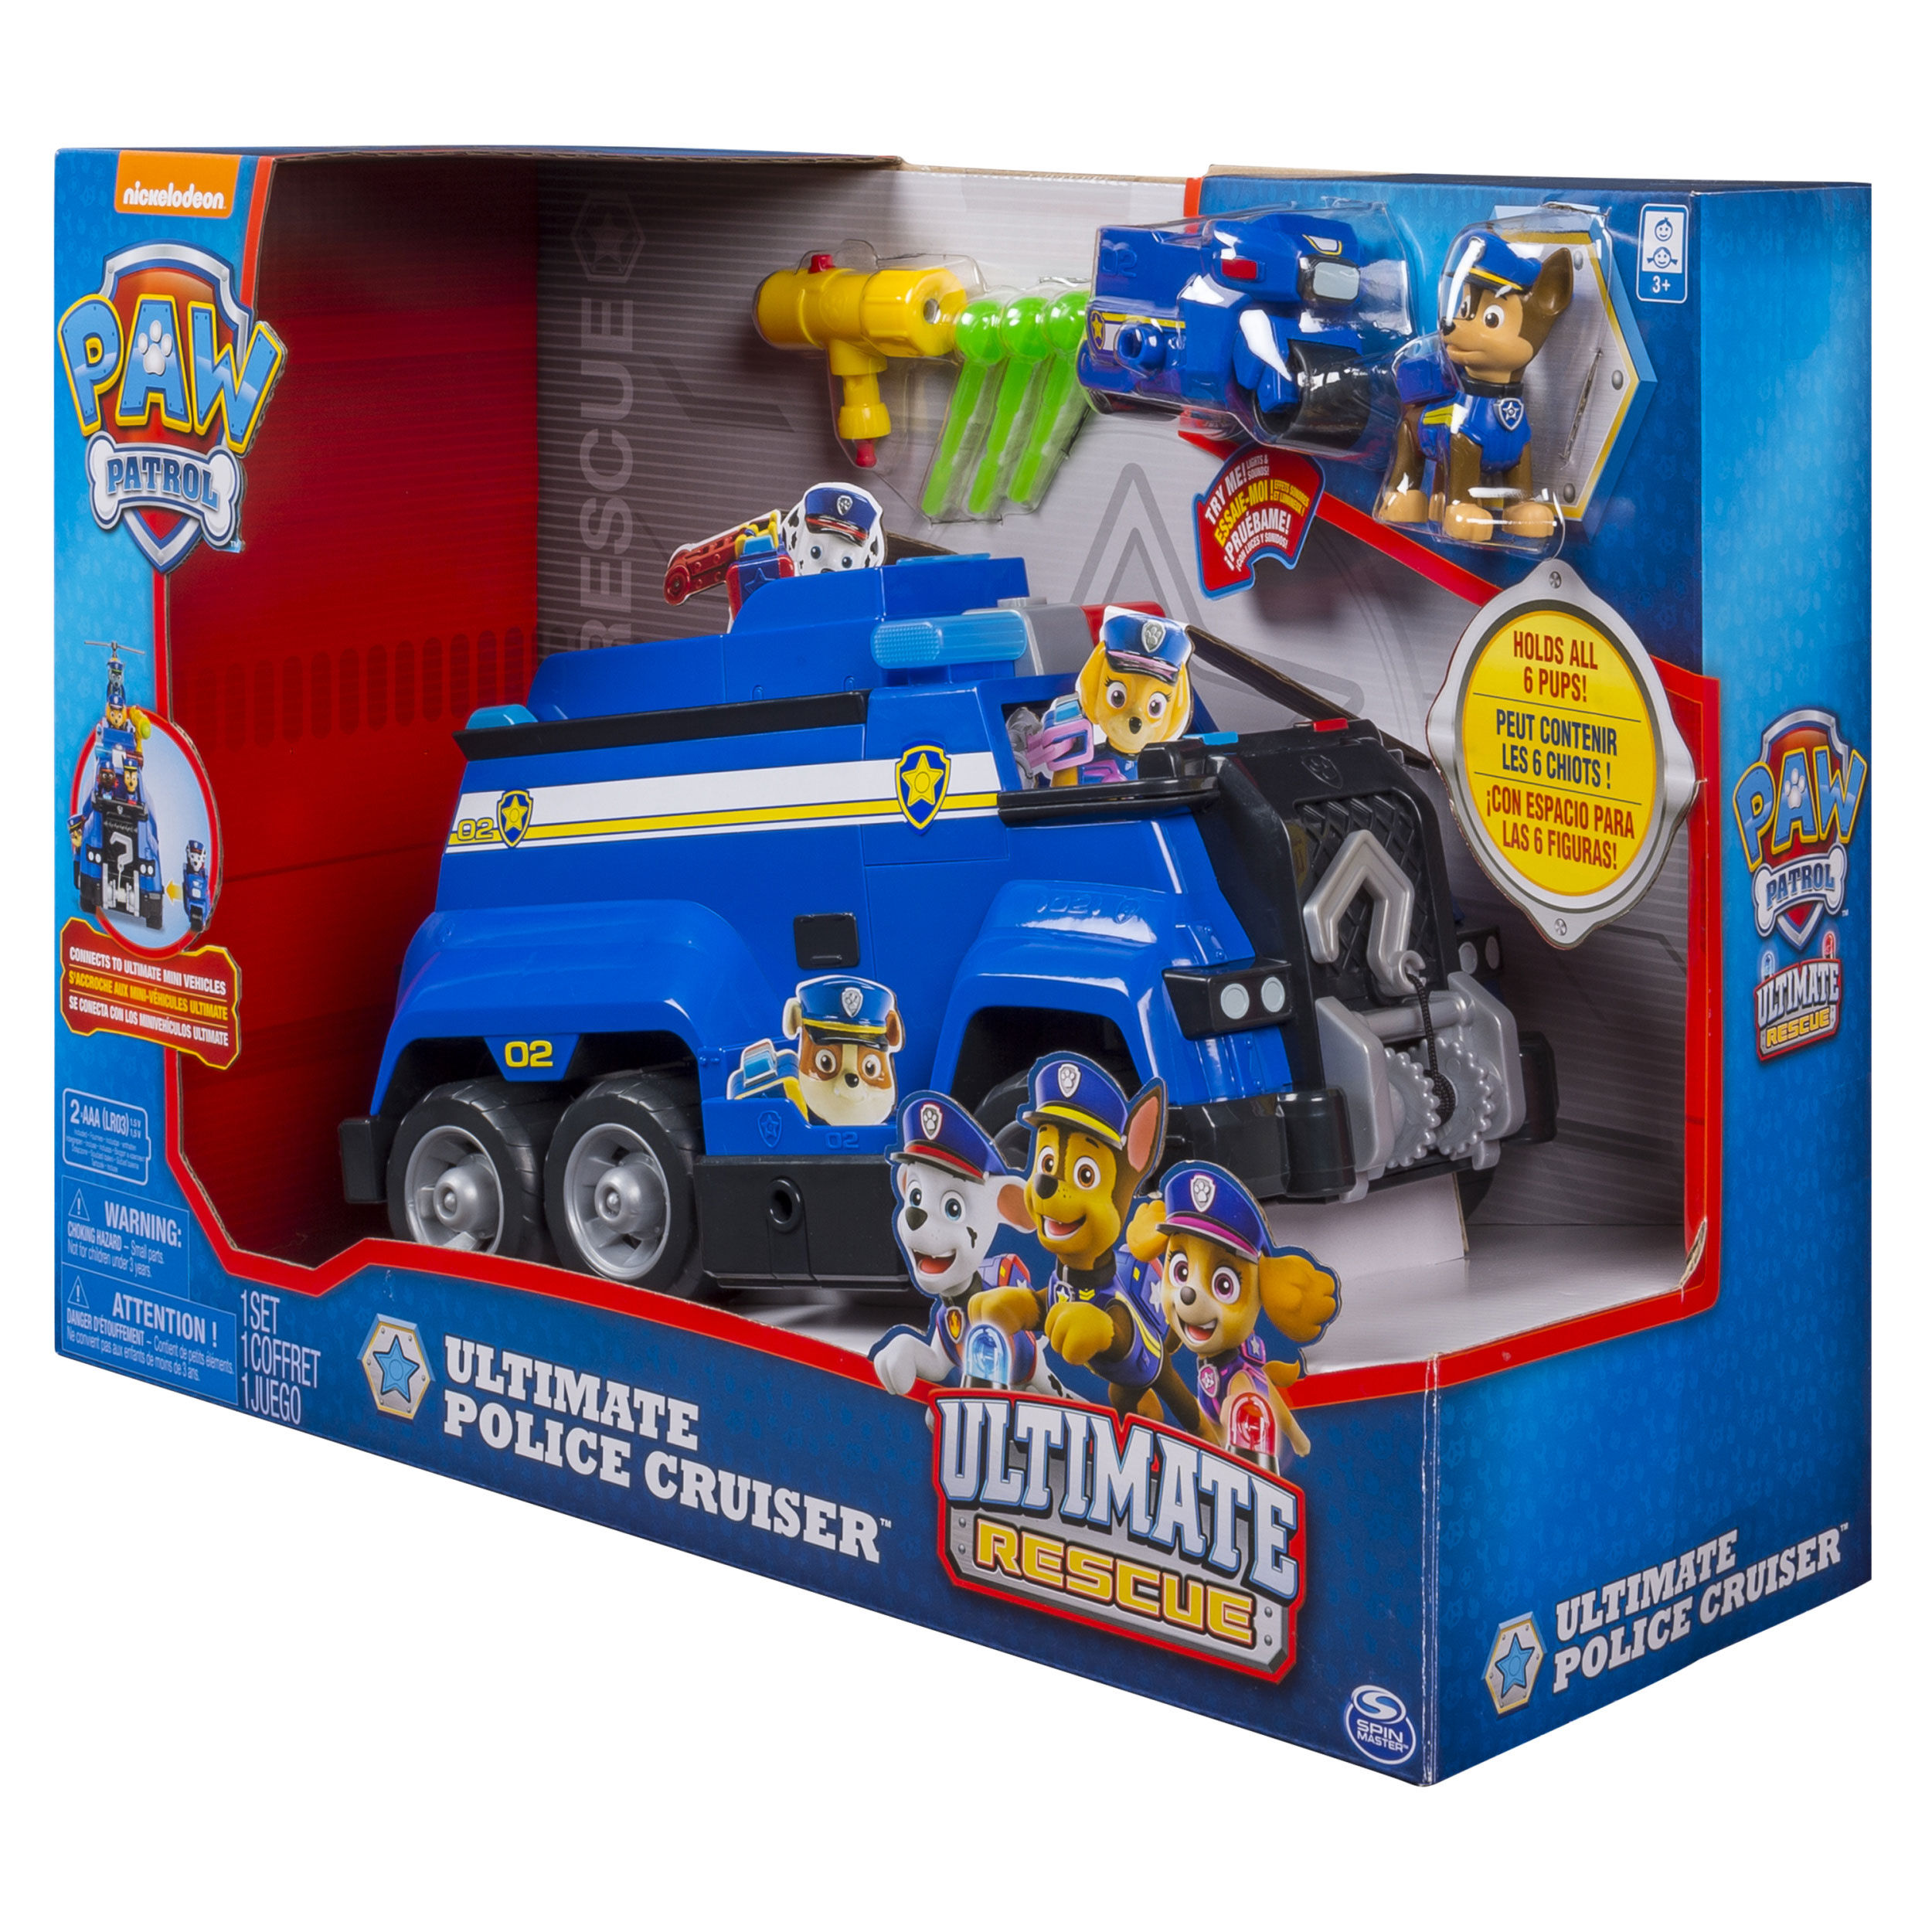 Nickelodeon PAW PATROL ULTIMATE RESCUE CHASE w// POLICE CRUISER Blue TOY VEHICLE